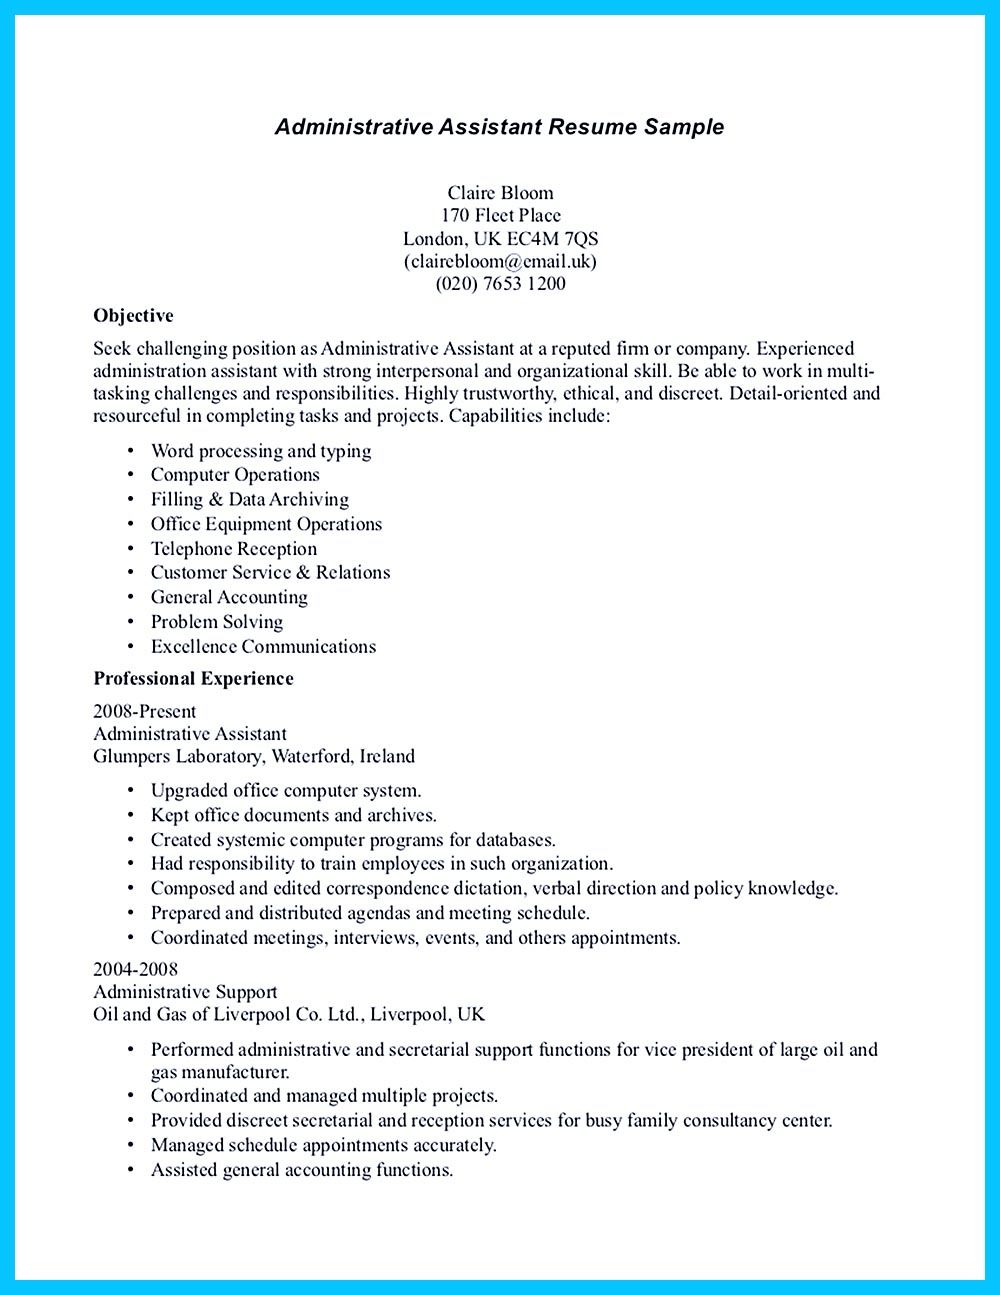 Entry Level Administrative Assistant Resume Classy In Writing Entry Level Administrative Assistant Resume You Need To .